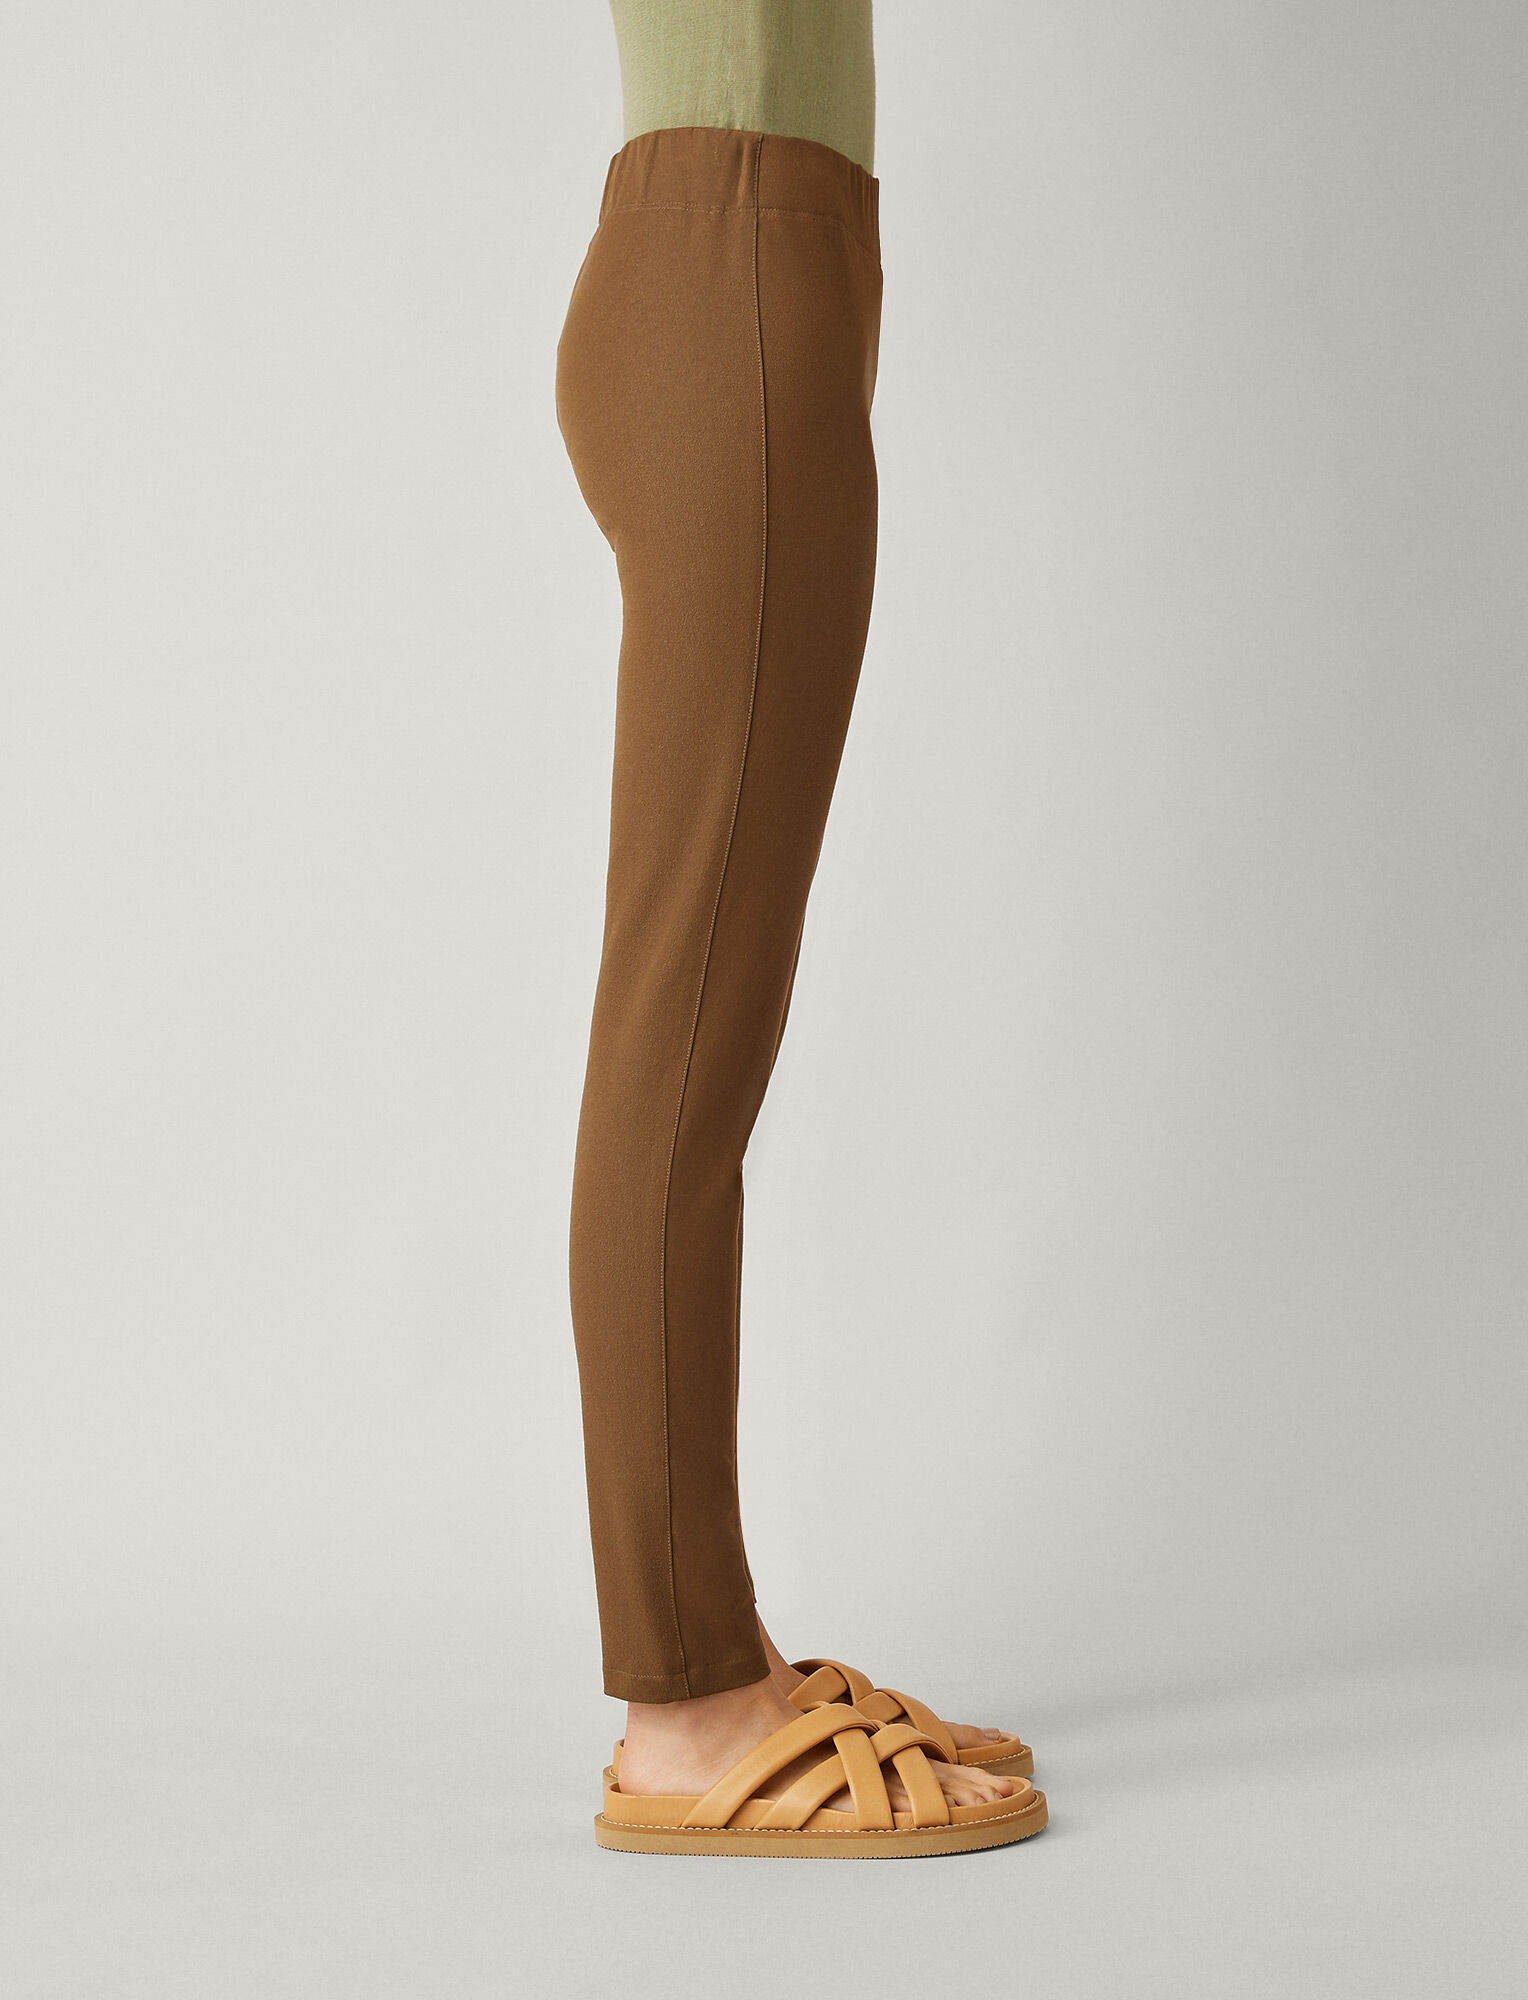 Joseph, Gabardine Stretch Leggings, in KHAKI